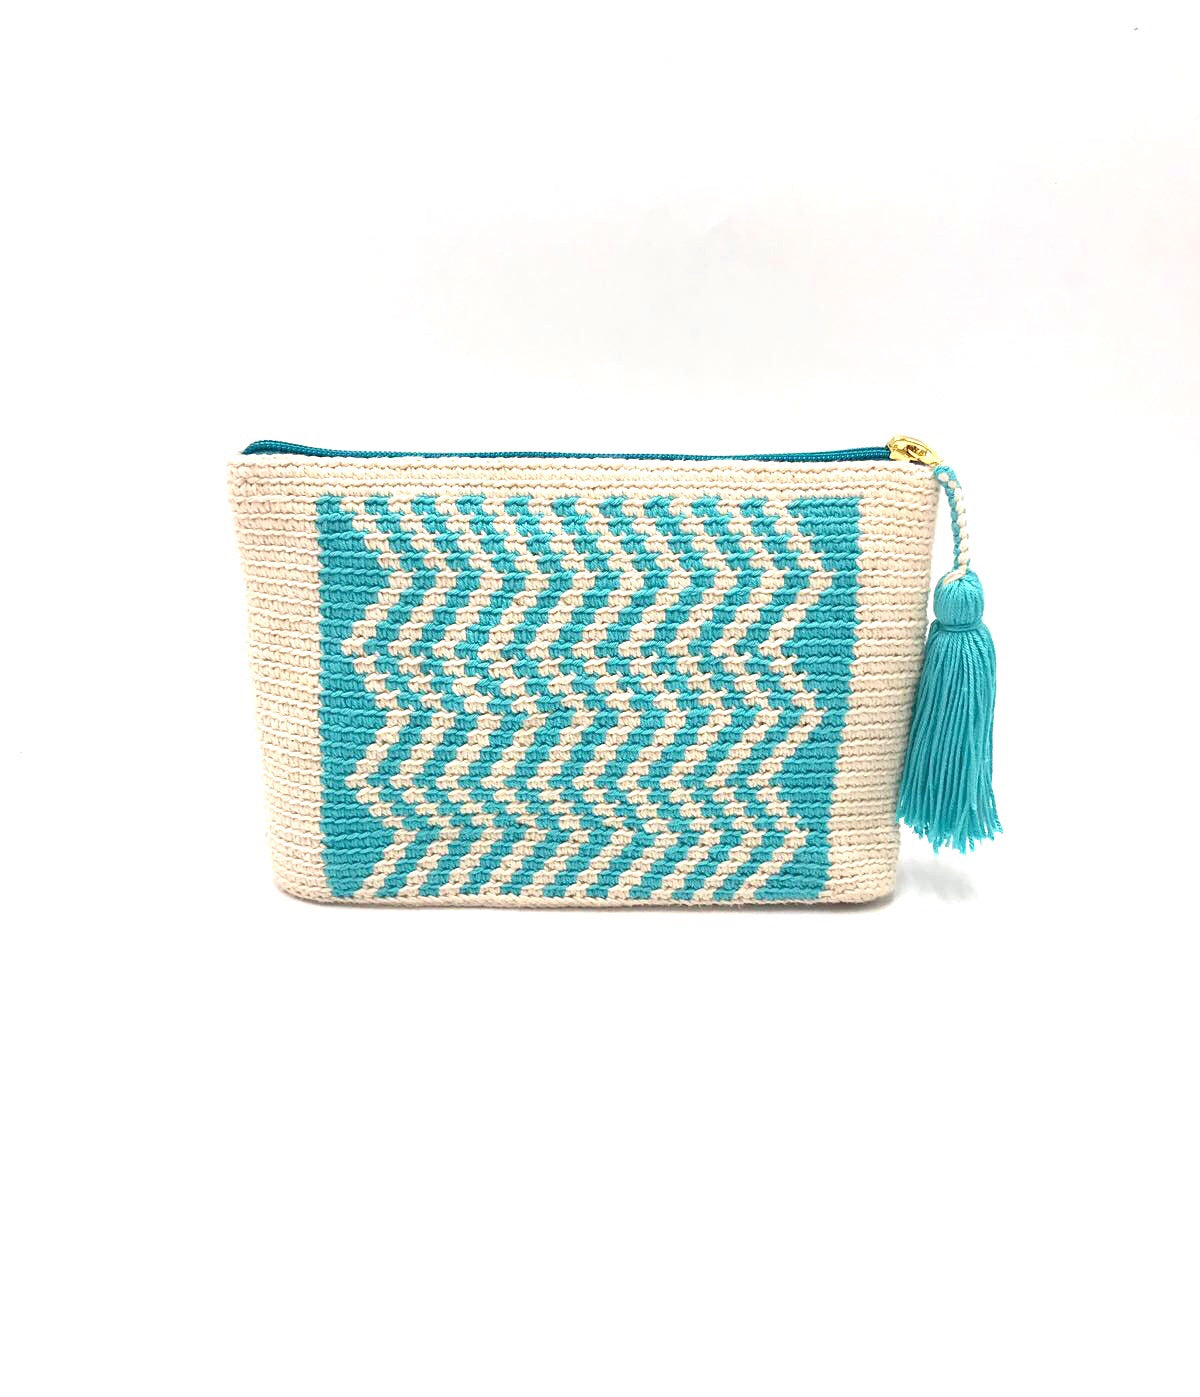 Clutch, Off white body, turquoise wave pattern with tassel.